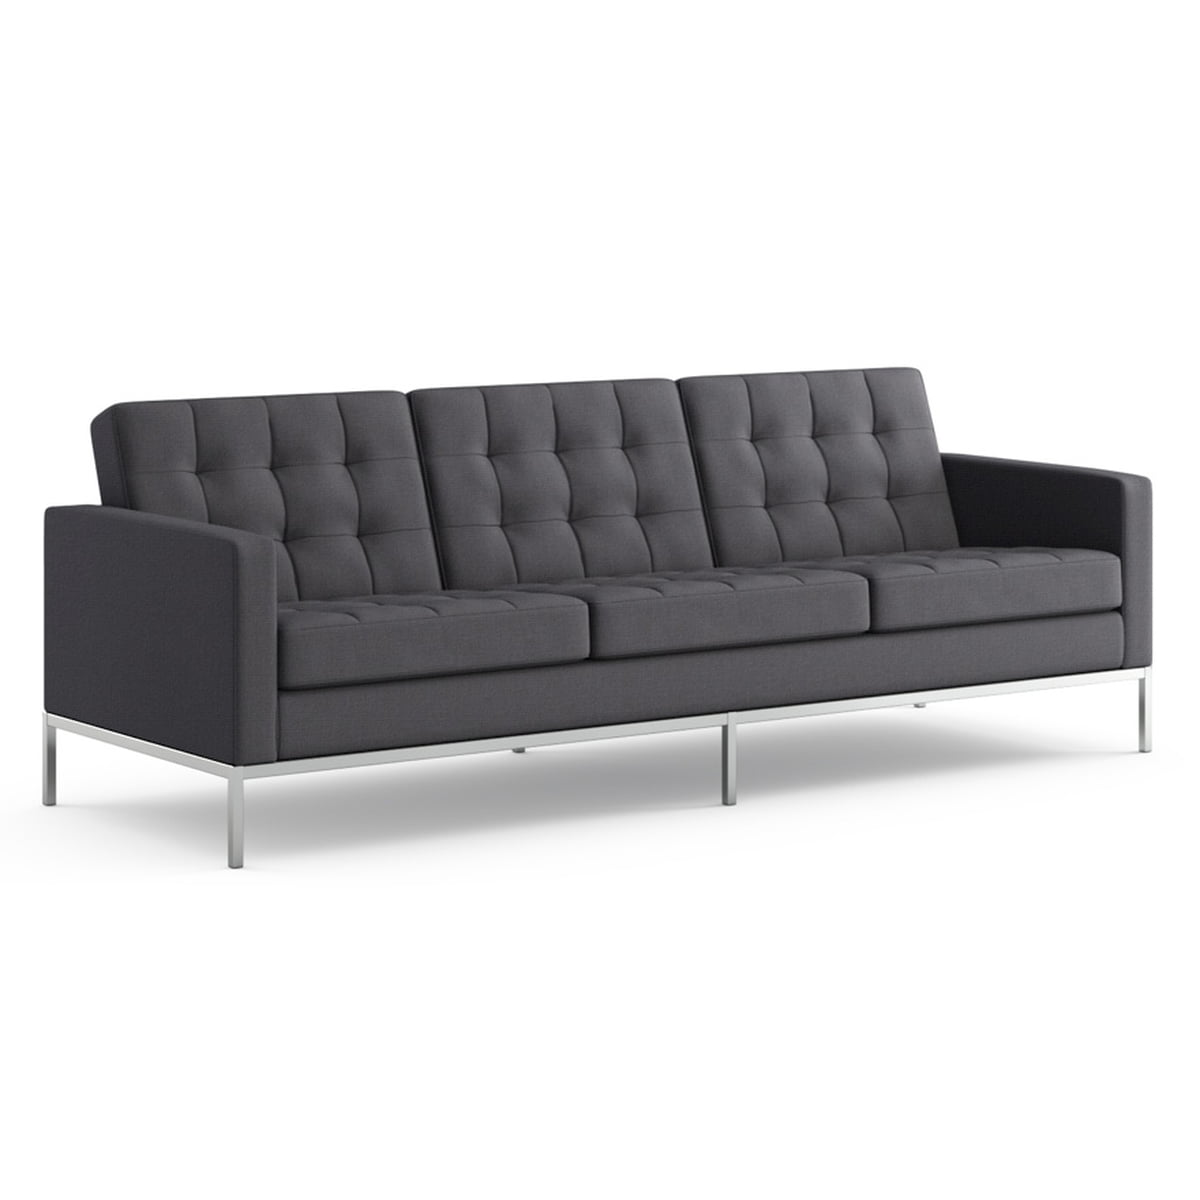 florence 3 sitzer sofa von knoll connox. Black Bedroom Furniture Sets. Home Design Ideas